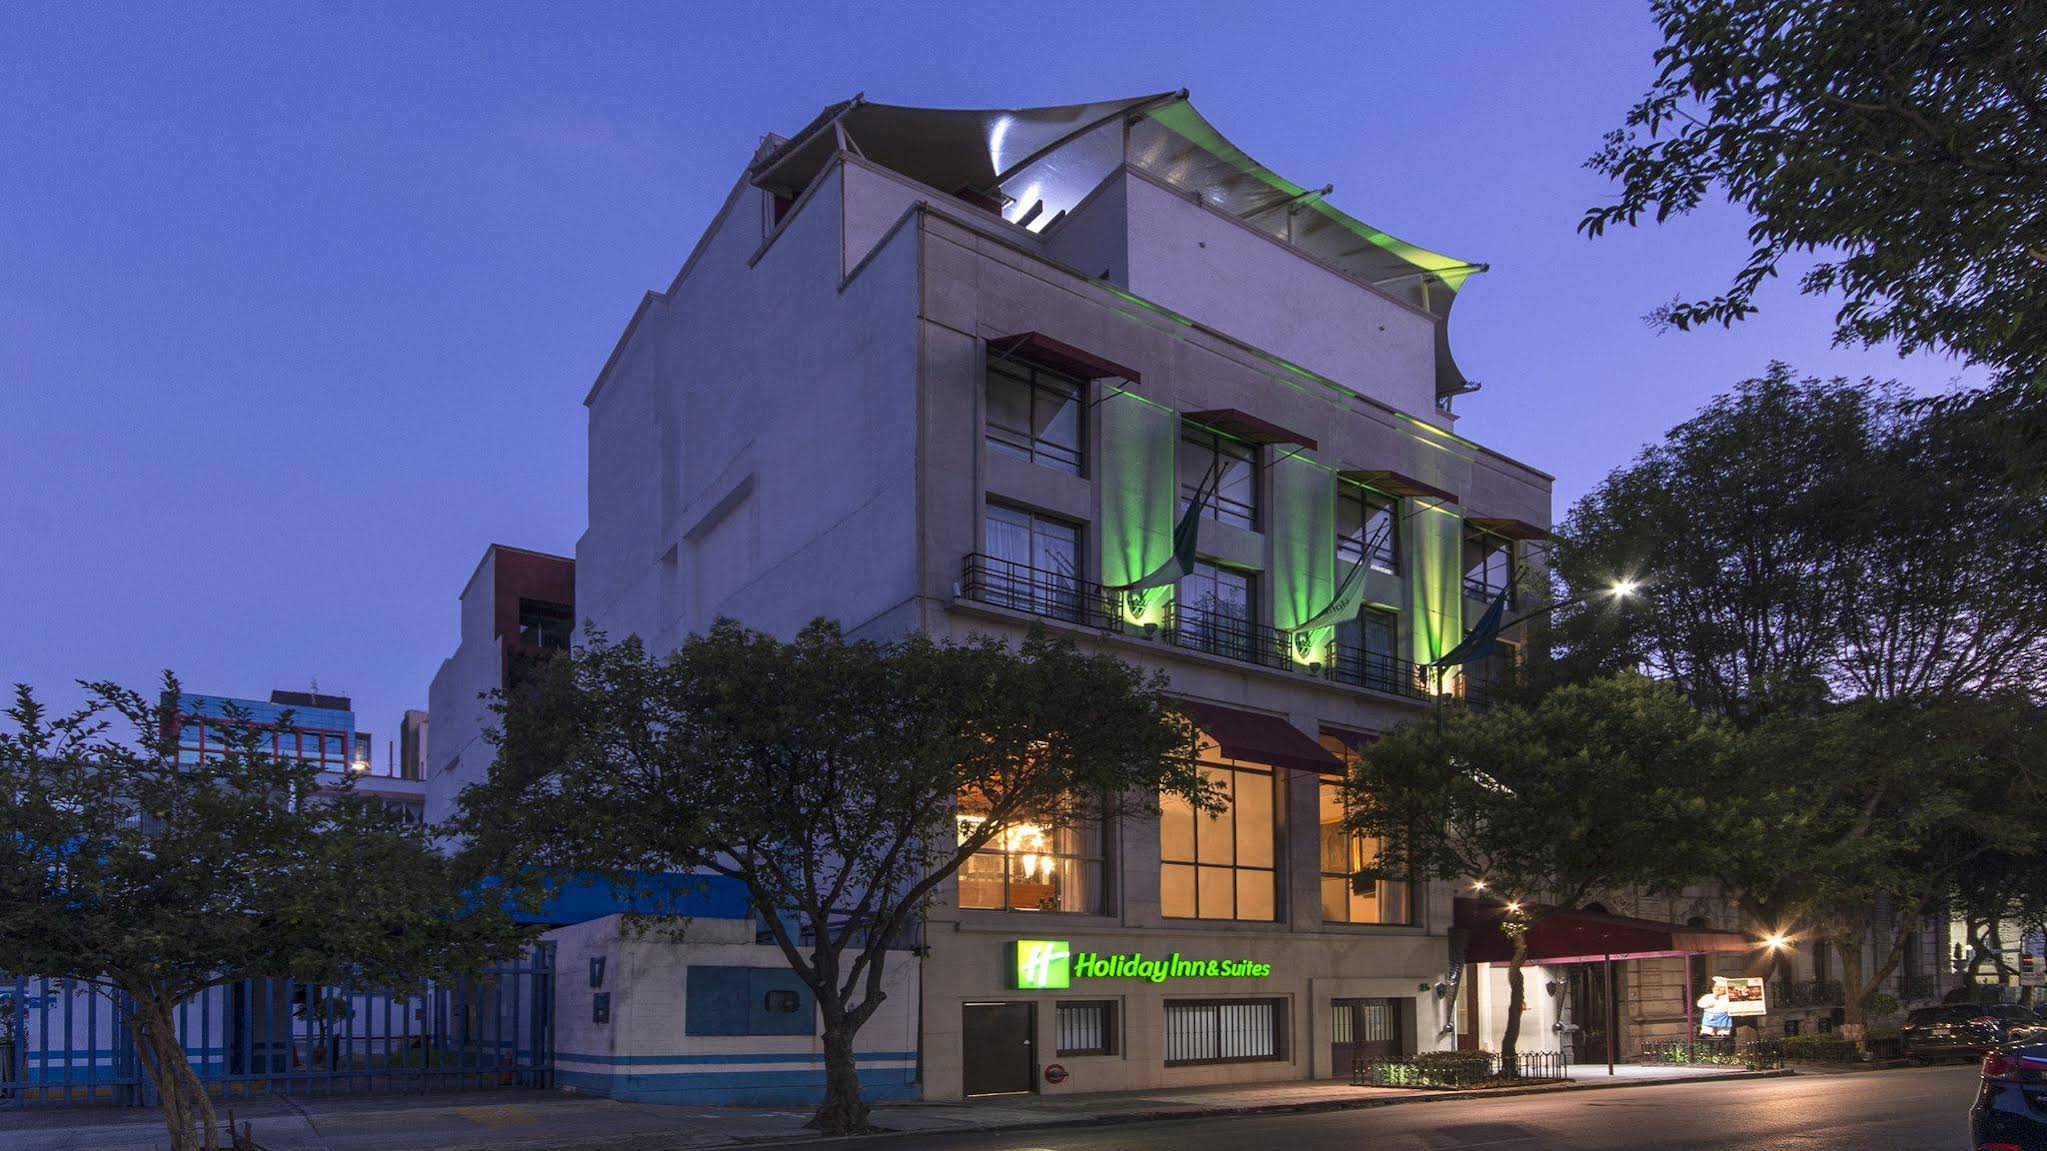 Holiday Inn and Suites Cd de Mexico Zona Rosa